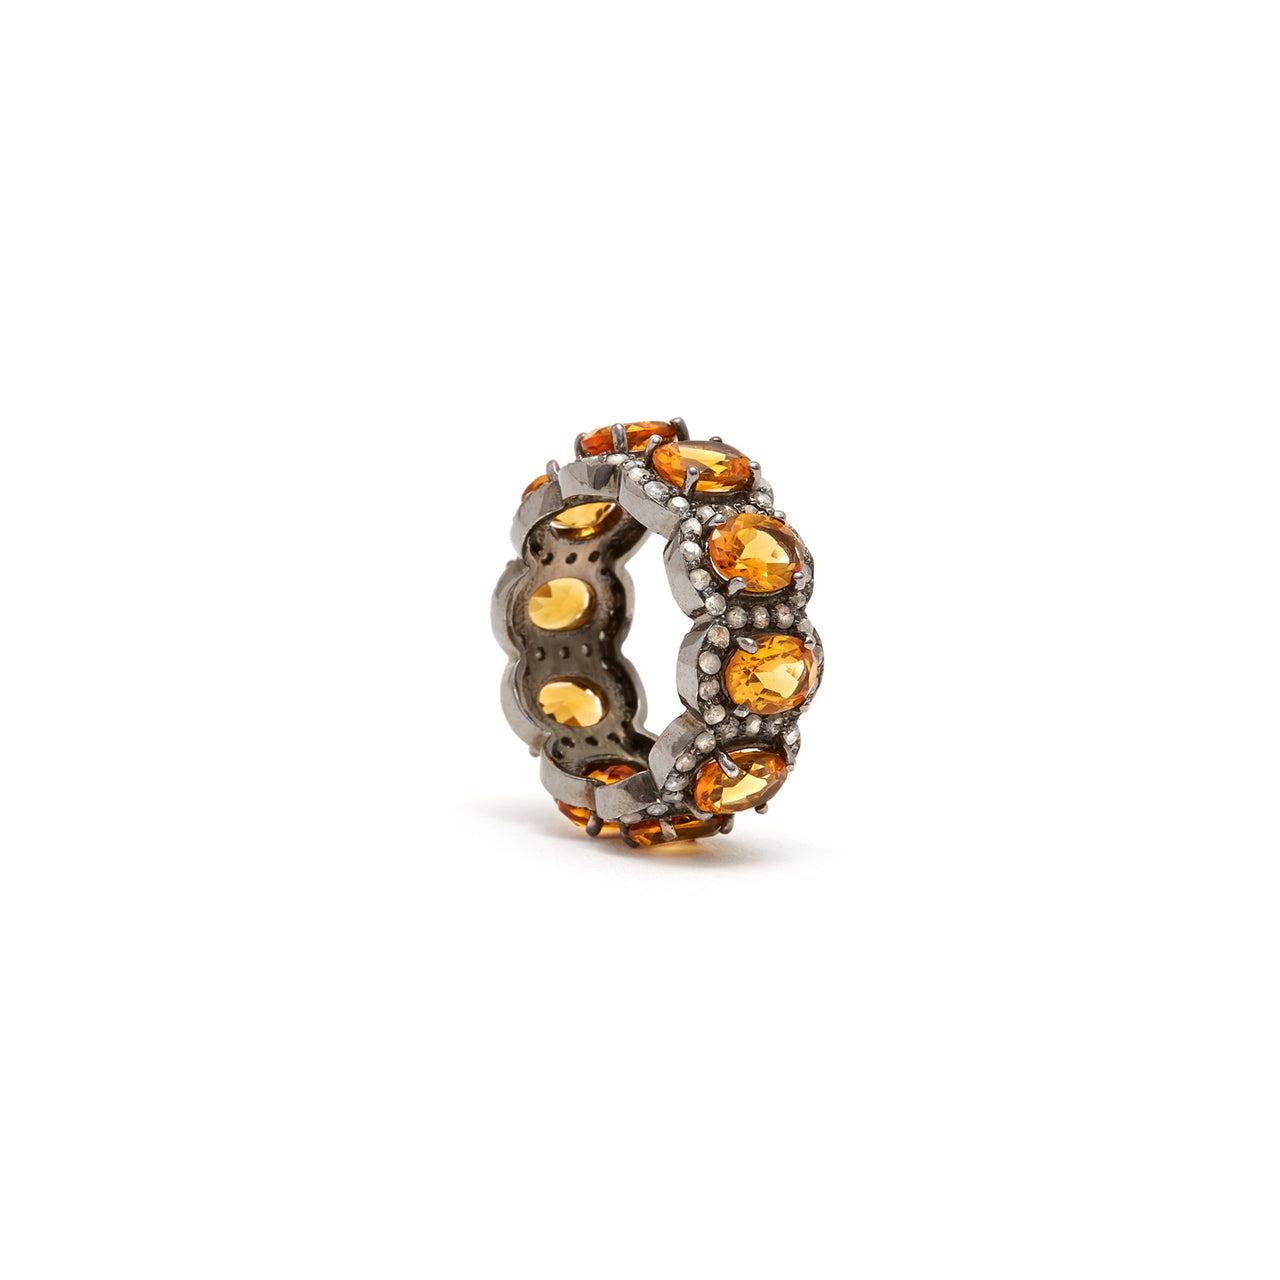 Amber Orange Citrine Diamond Tiara Ring-Ring-Jaipur Atelier